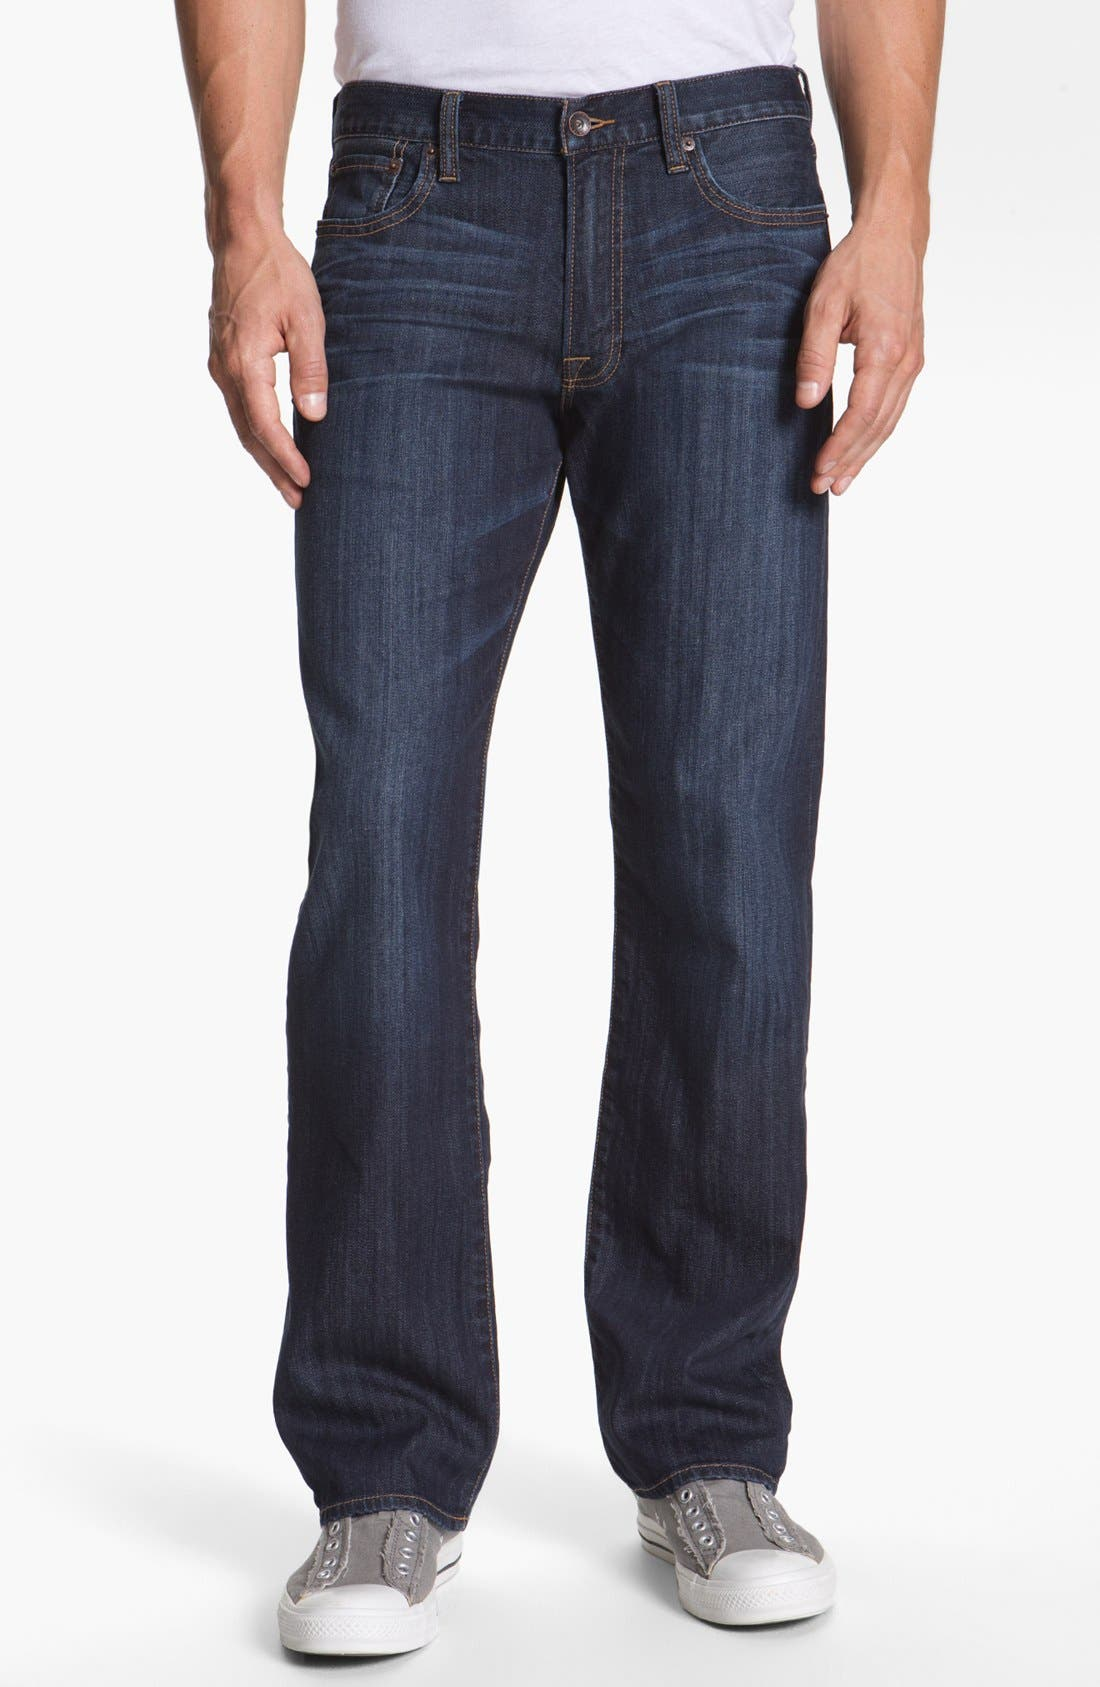 Alternate Image 1 Selected - Lucky Brand '361 Vintage' Straight Leg Jeans (Chanson)